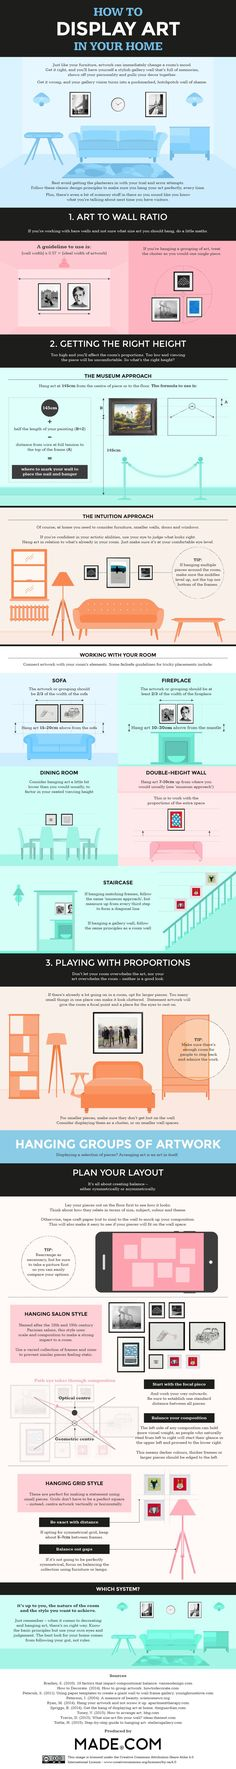 How to display art in your home - Imgur